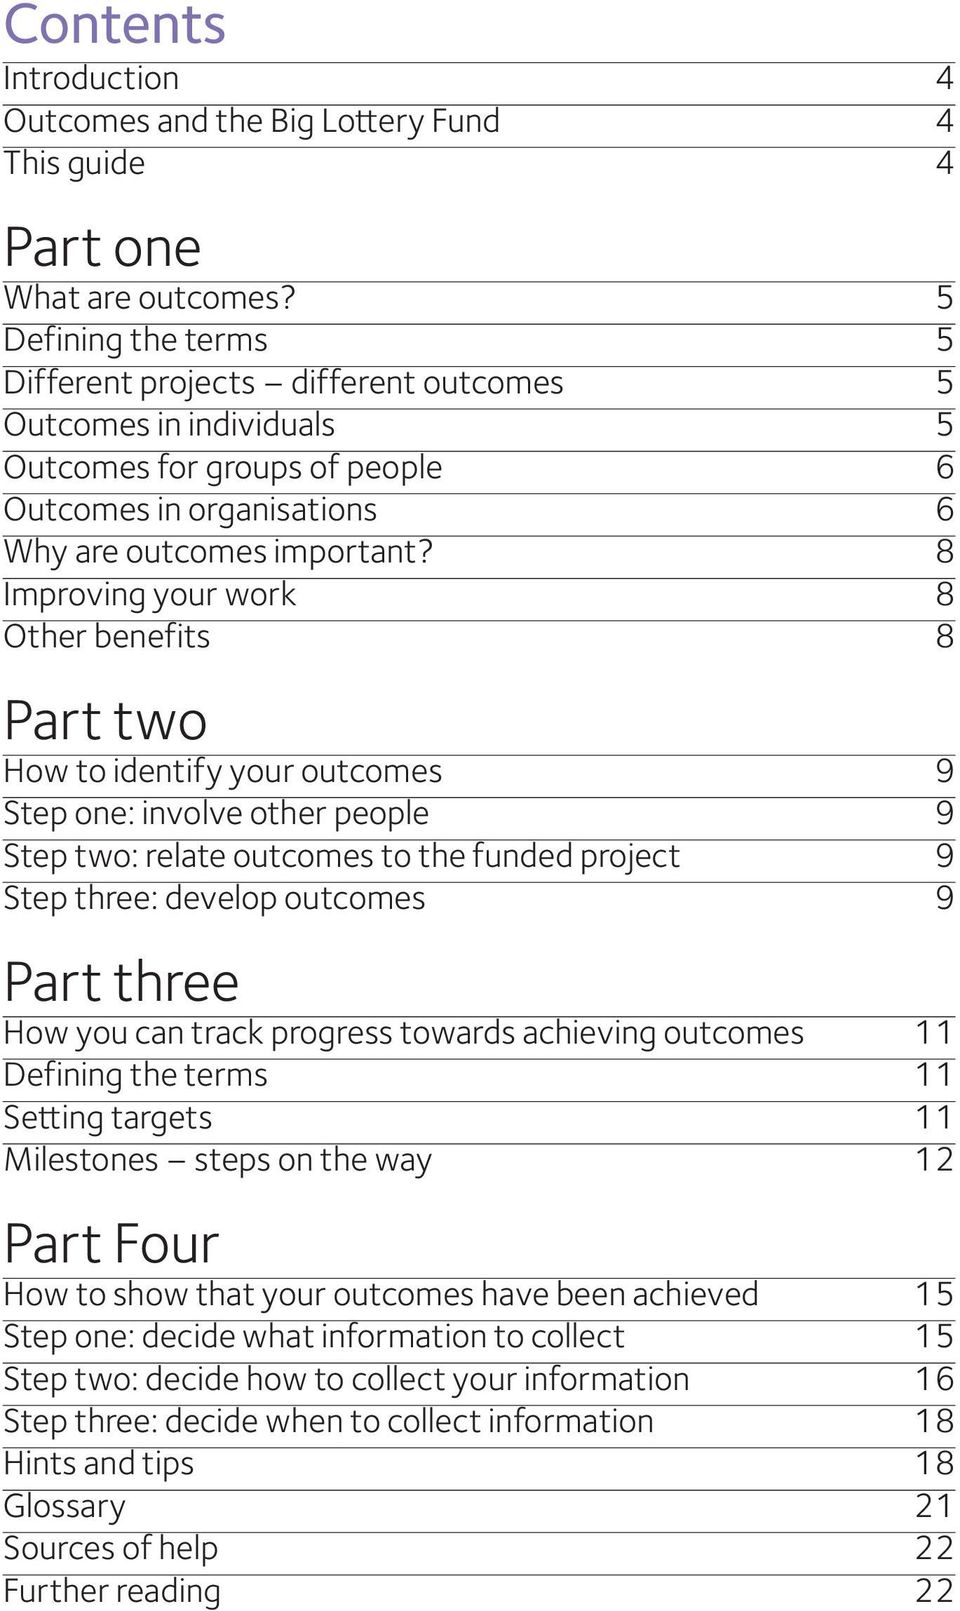 8 Improving your work 8 Other benefits 8 Part two How to identify your outcomes 9 Step one: involve other people 9 Step two: relate outcomes to the funded project 9 Step three: develop outcomes 9